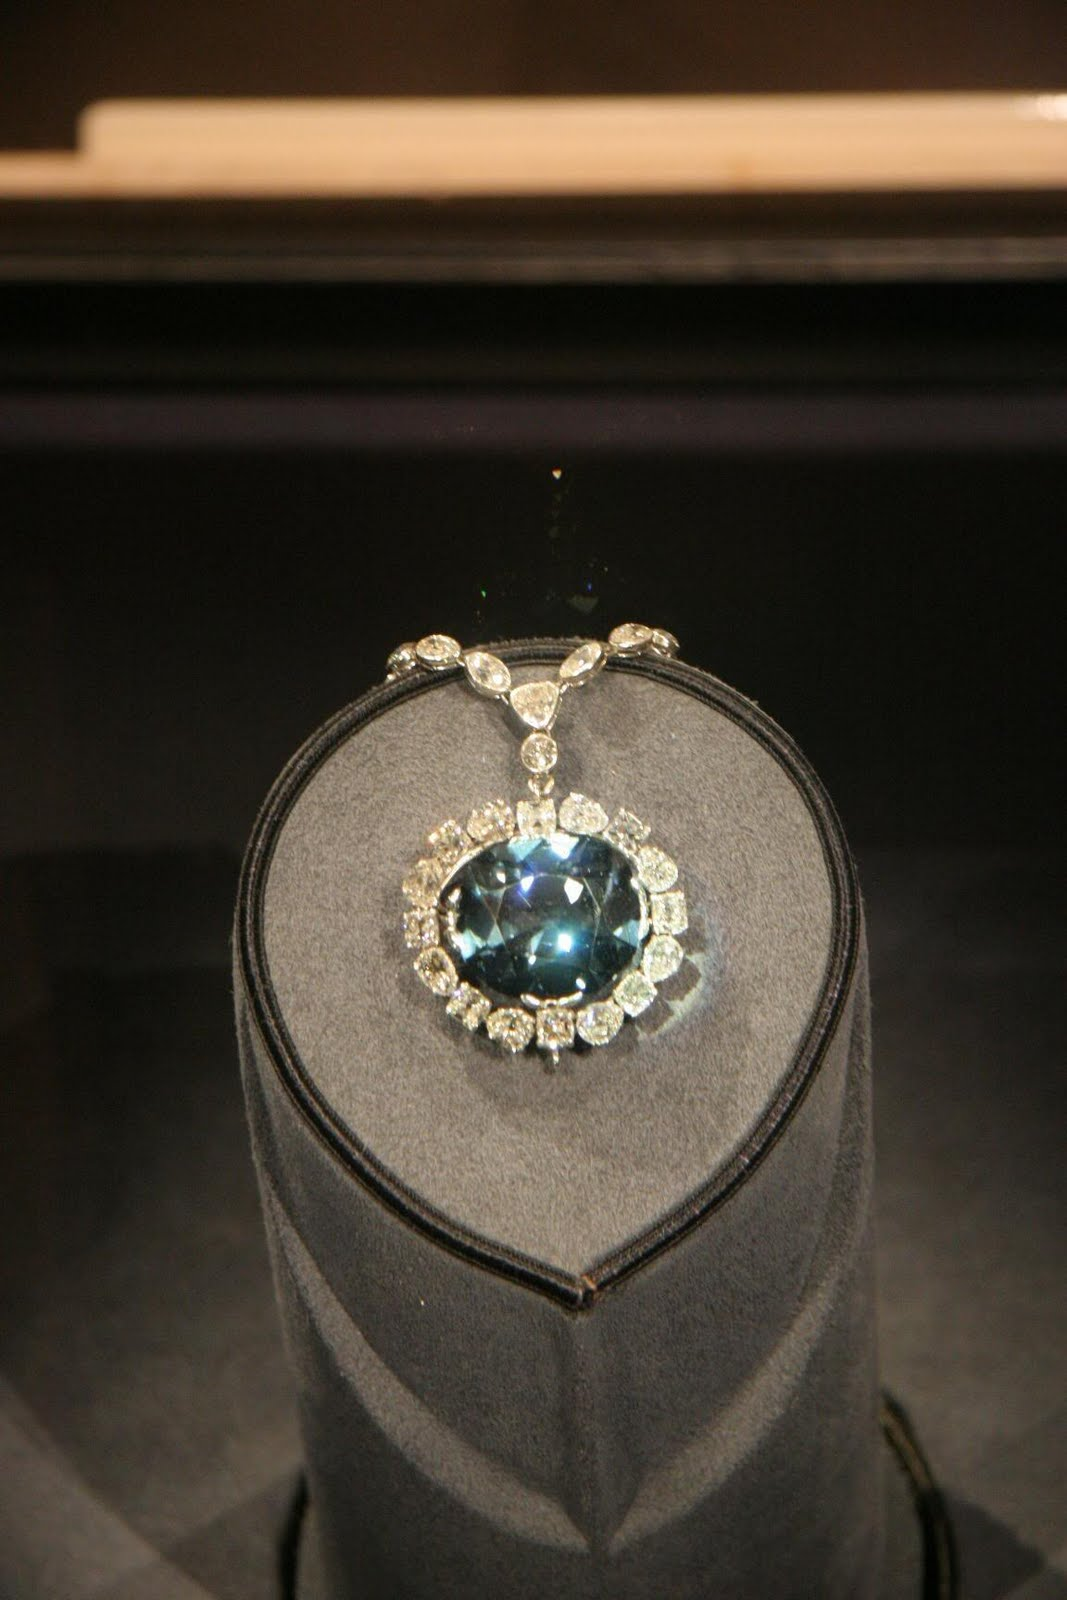 Hope Diamond Value